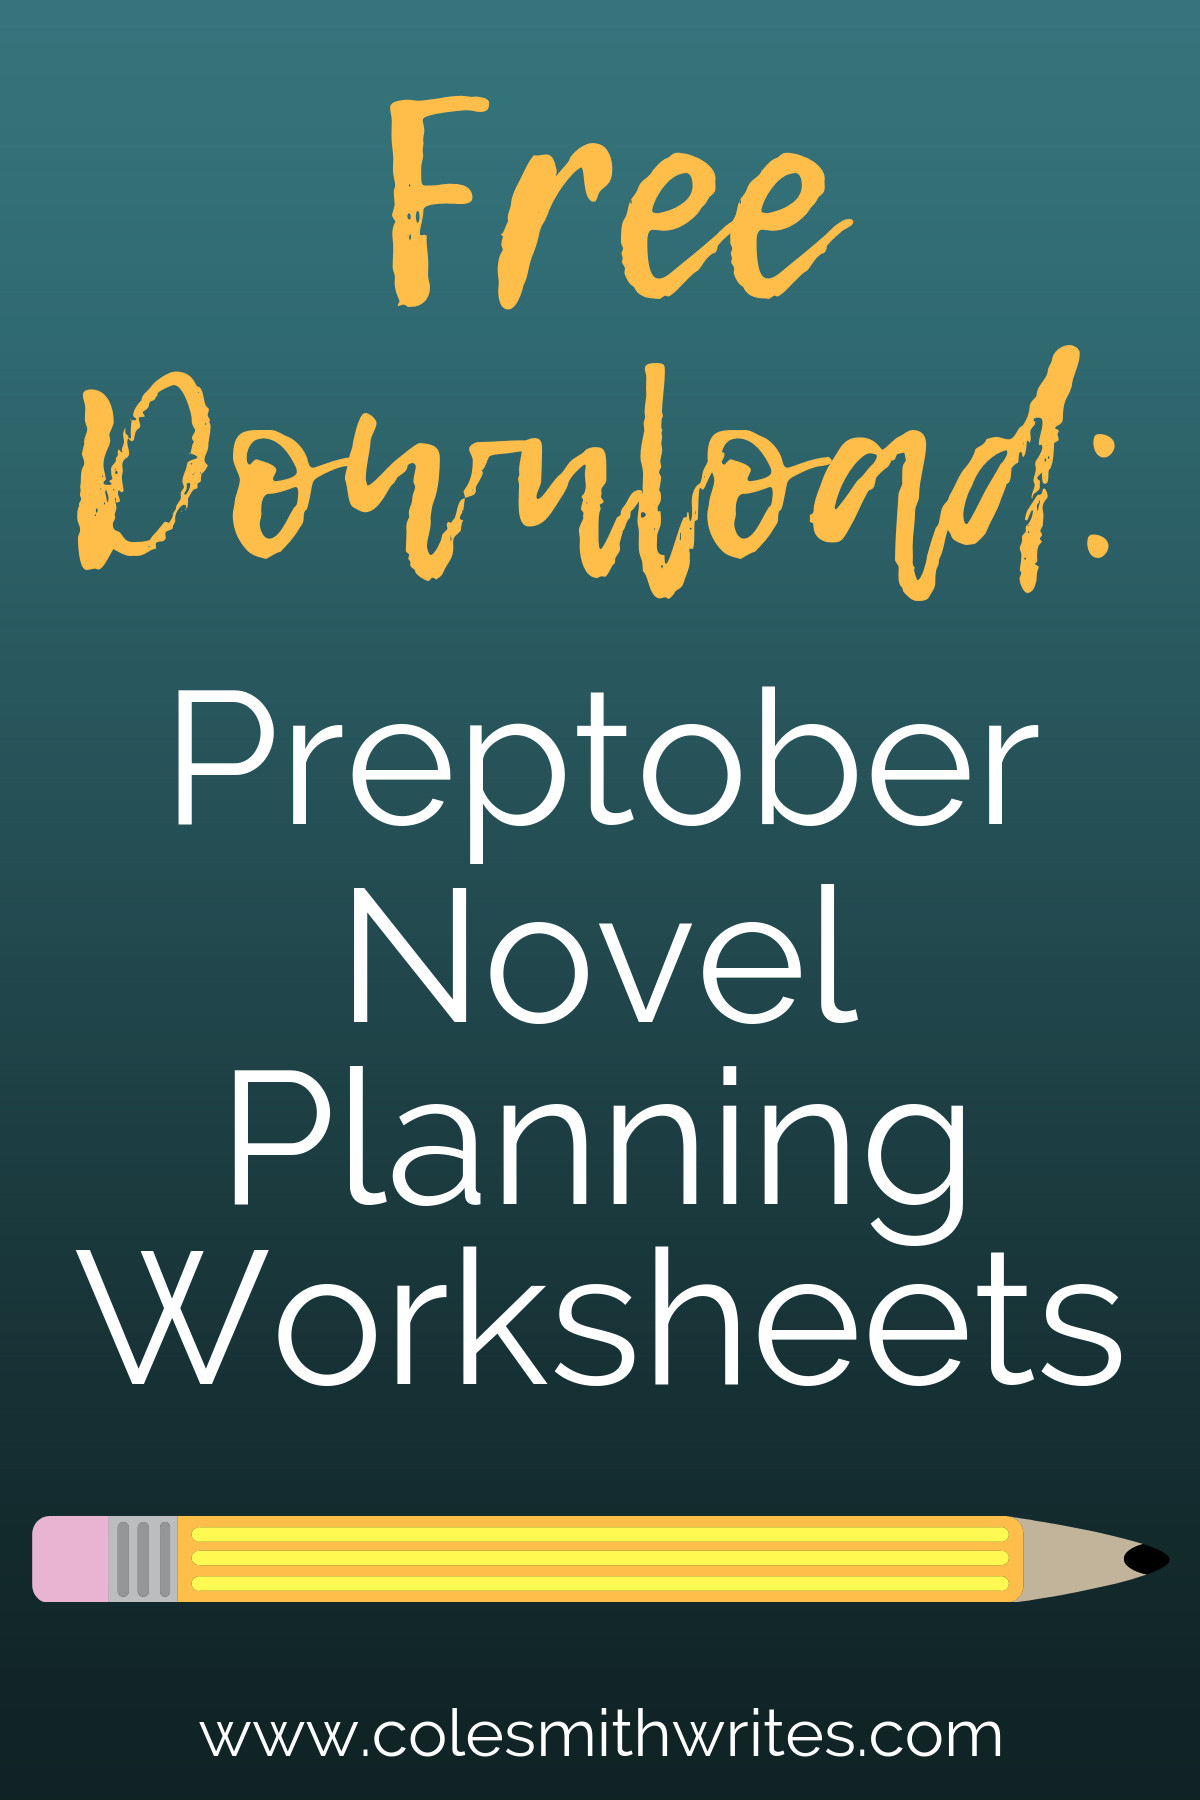 Do you use Preptober Novel Planning Worksheets? I do!